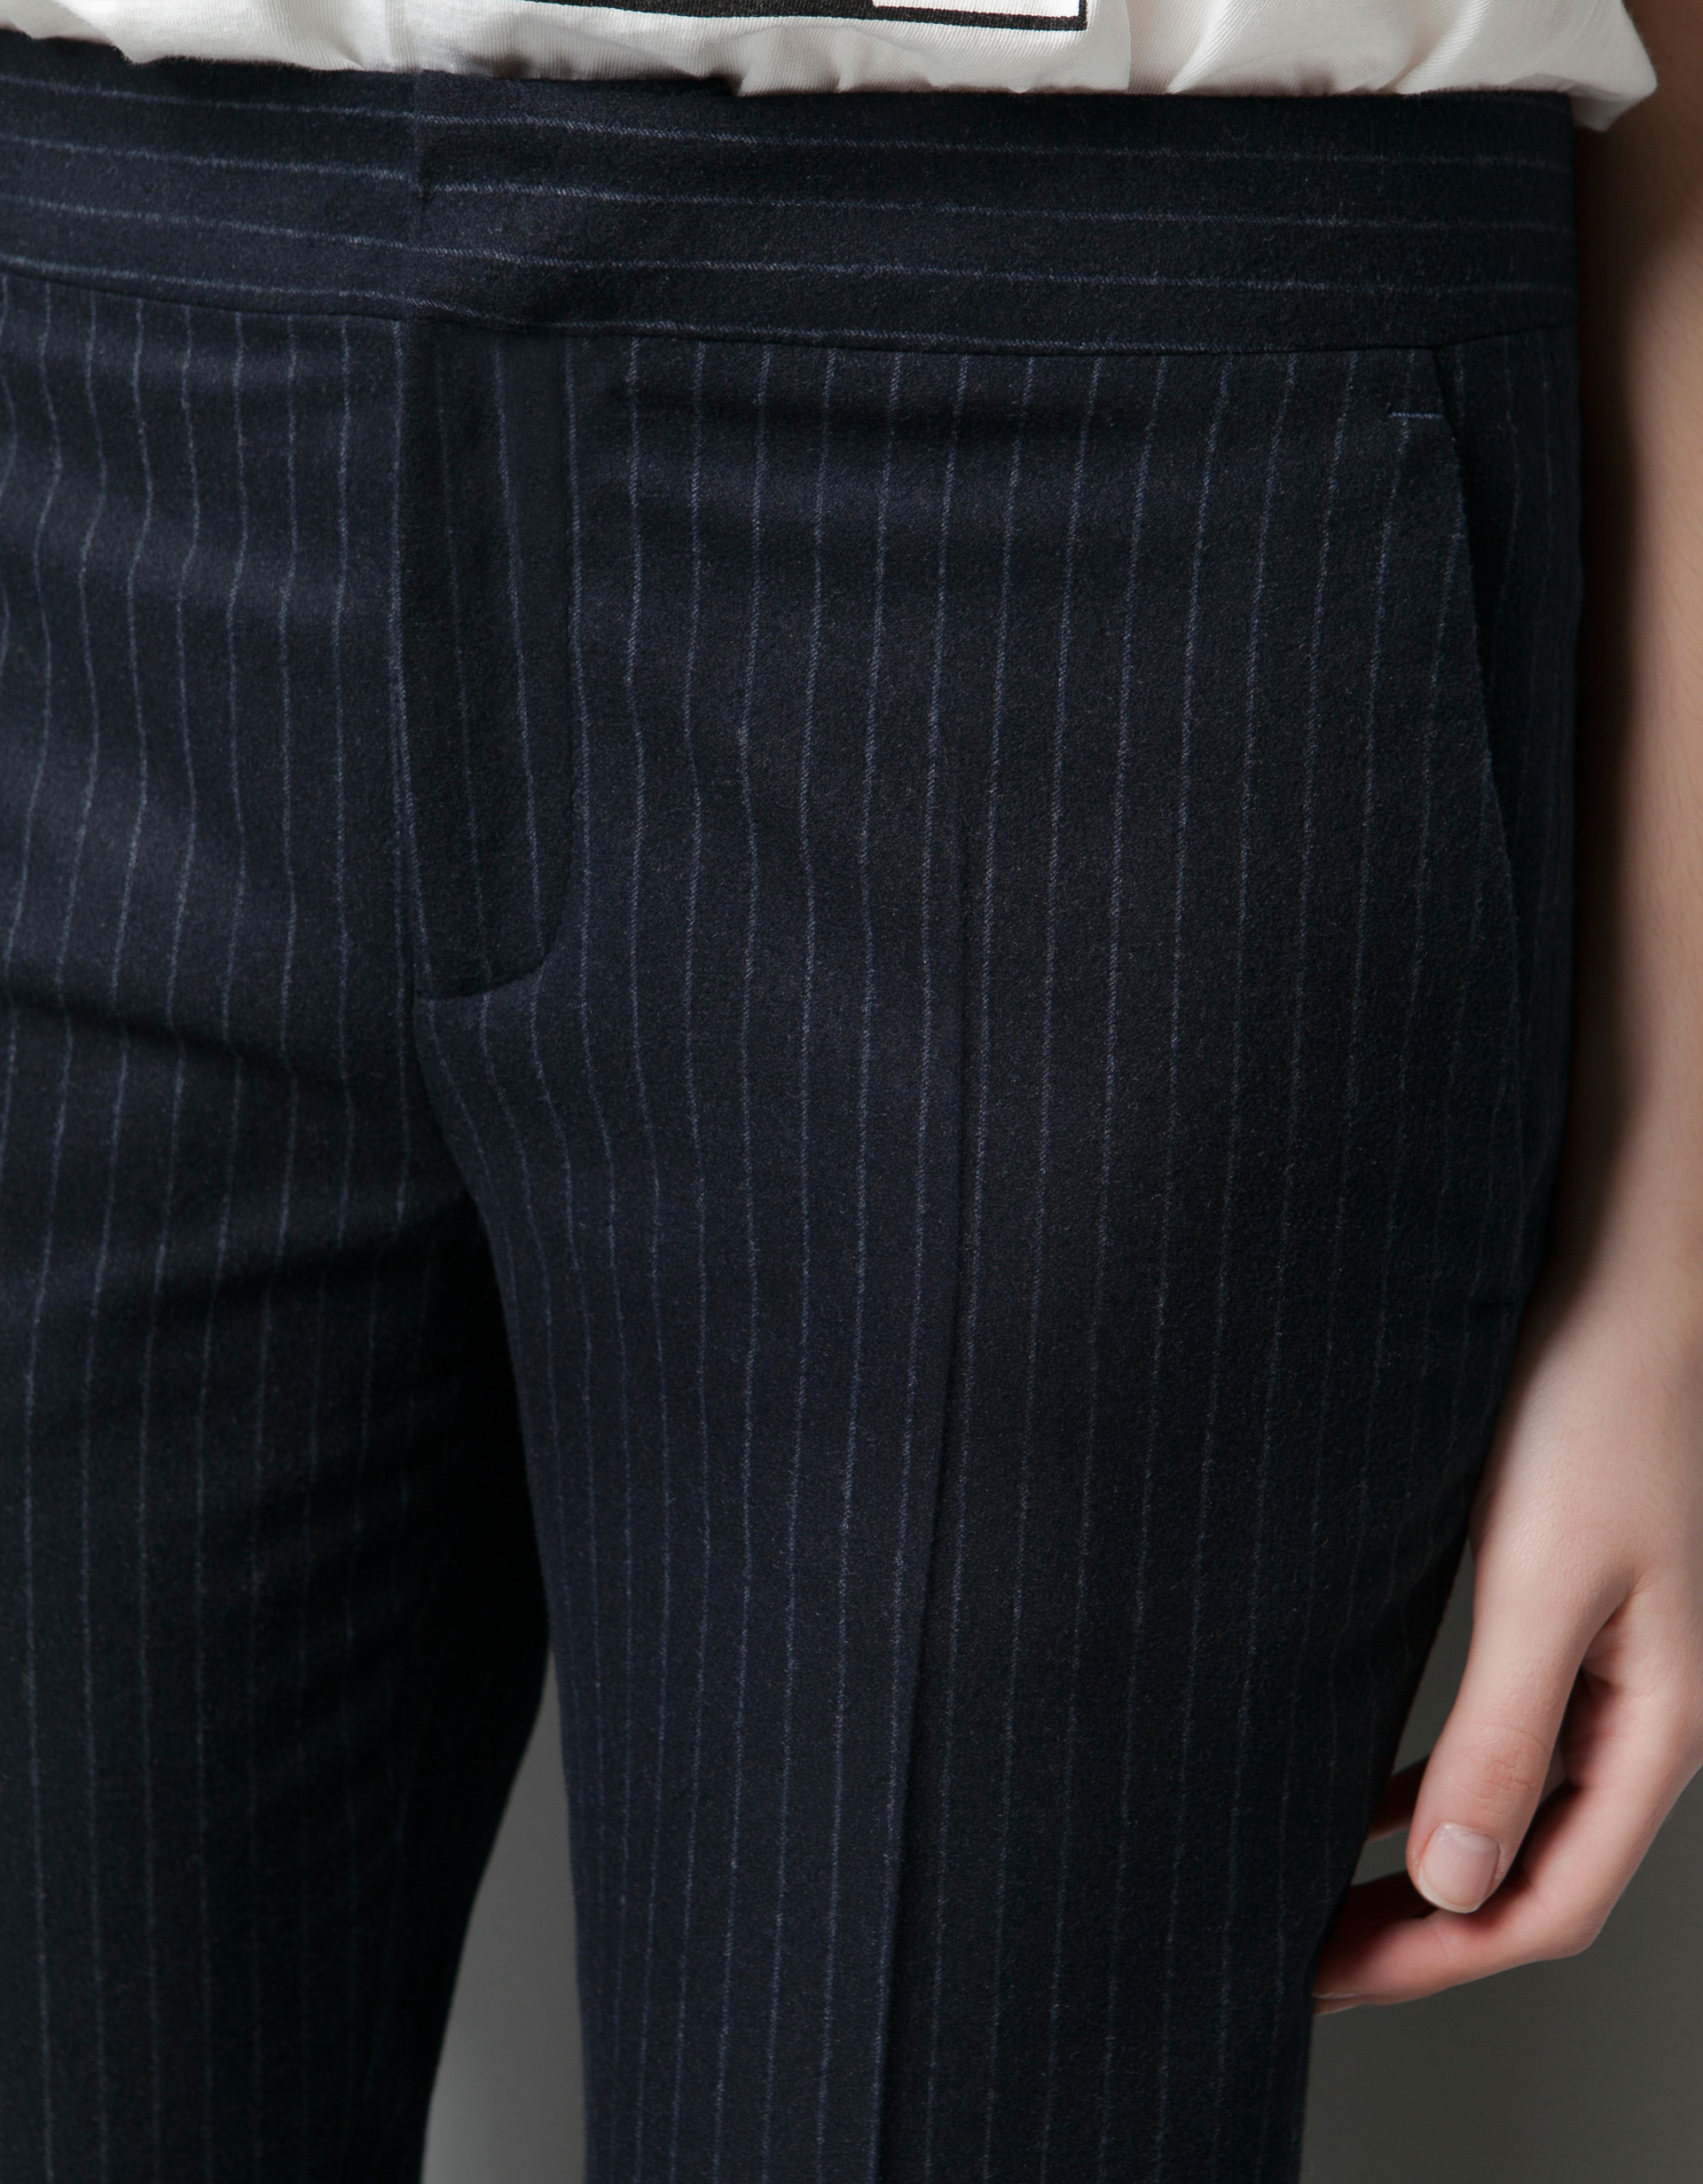 Shop for women pinstripe dress pants online at Target. Free shipping on purchases over $35 and save 5% every day with your Target REDcard.